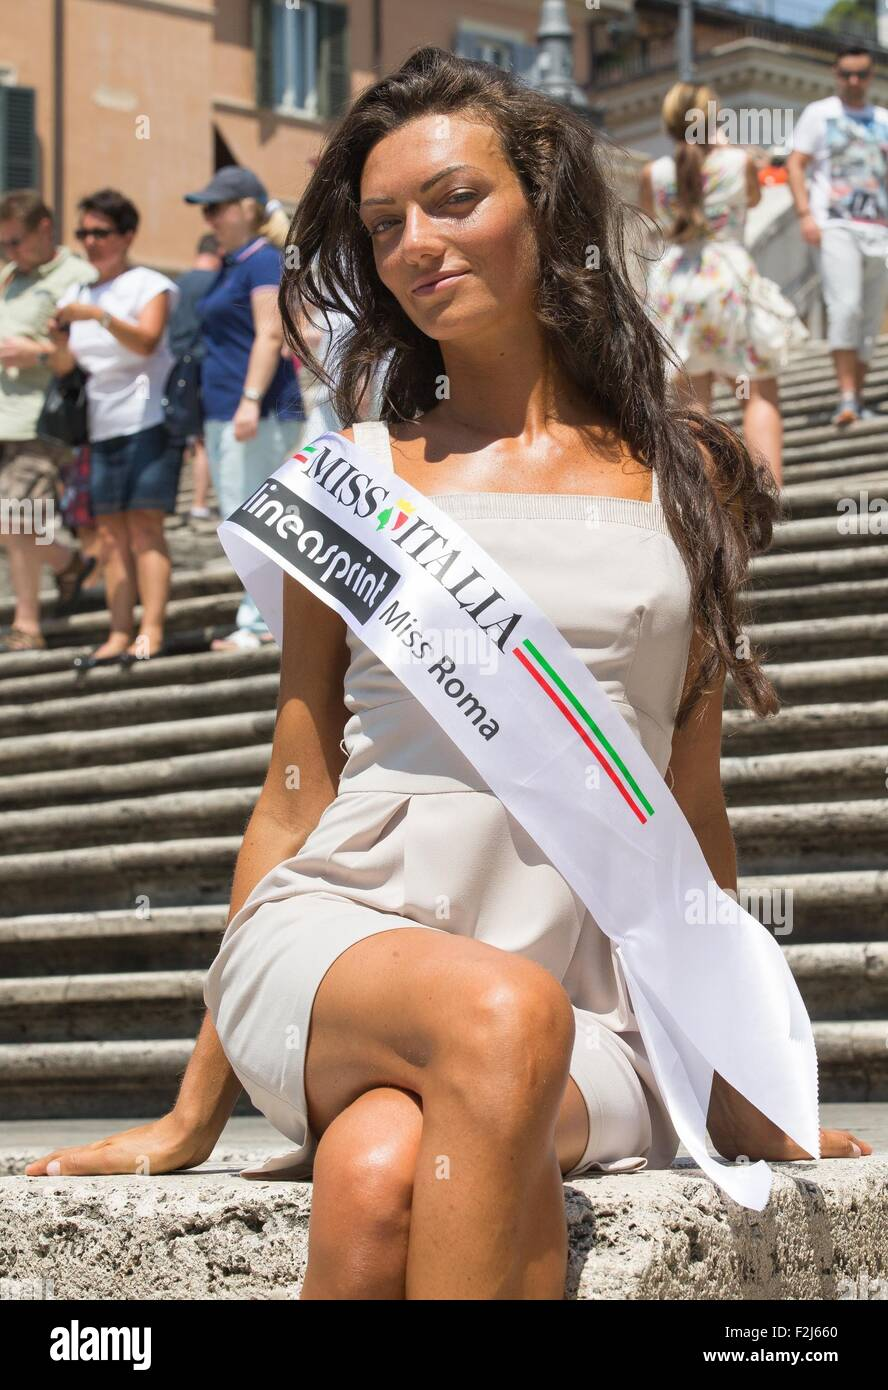 best service e8459 5fbbf Miss Rome 2015 Claudia Guidi poses for pictures in the ...